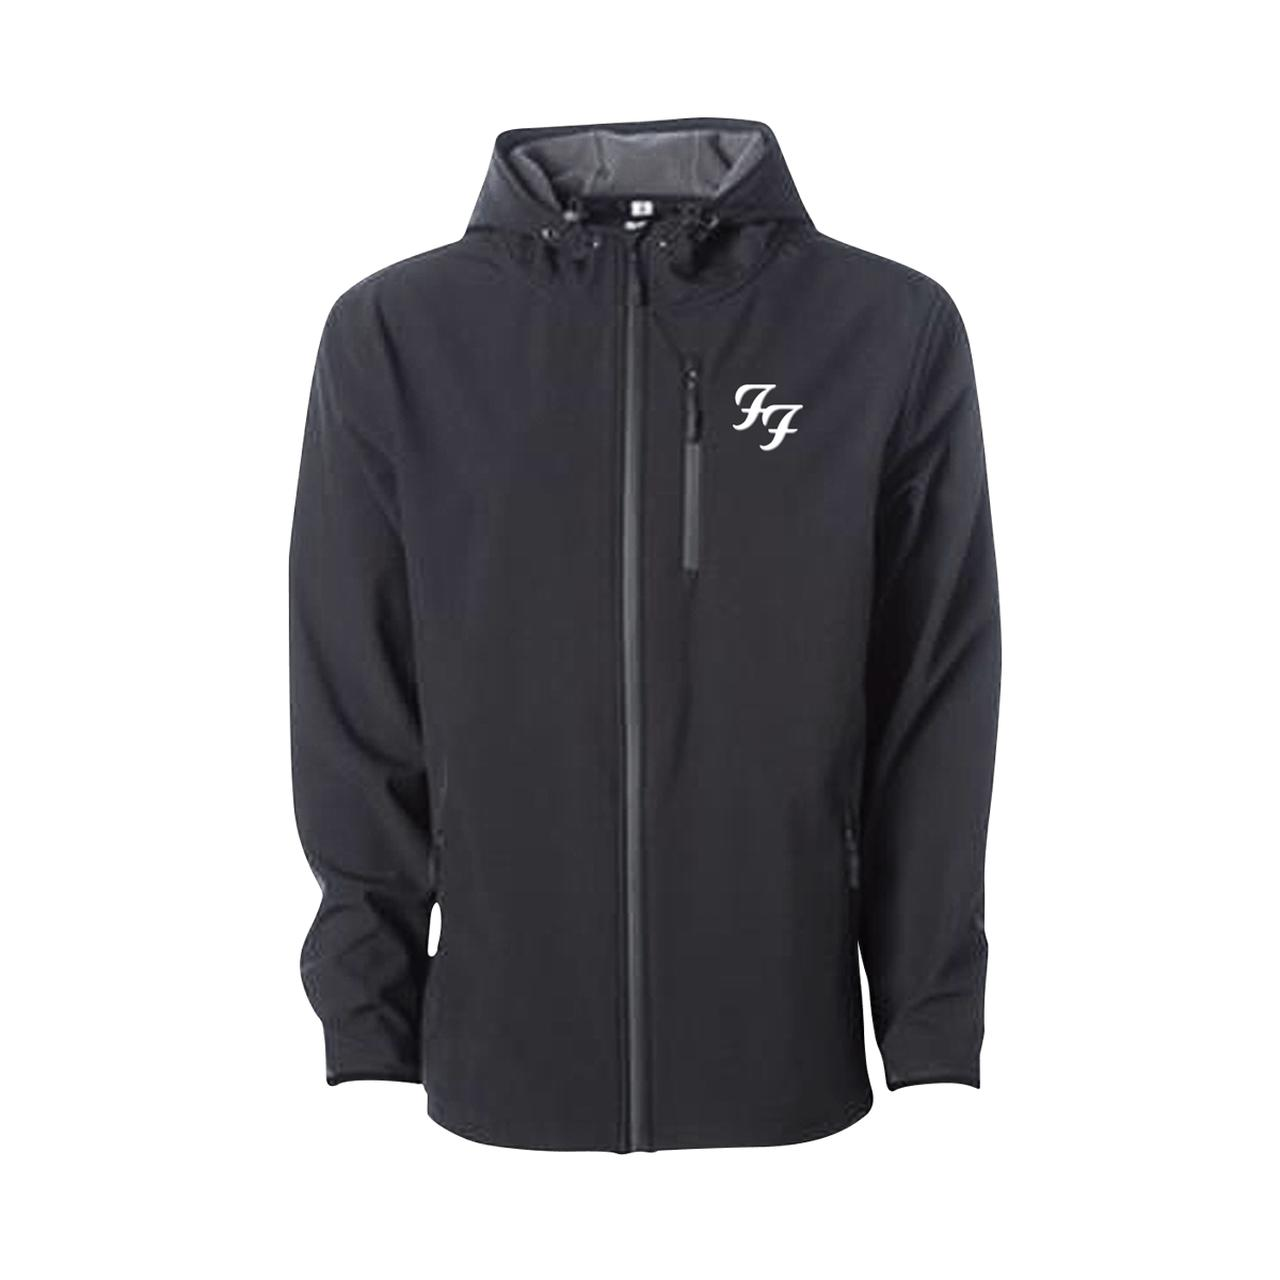 Foo Fighters Soft Shell Embroidered Jacket. Hover to zoom